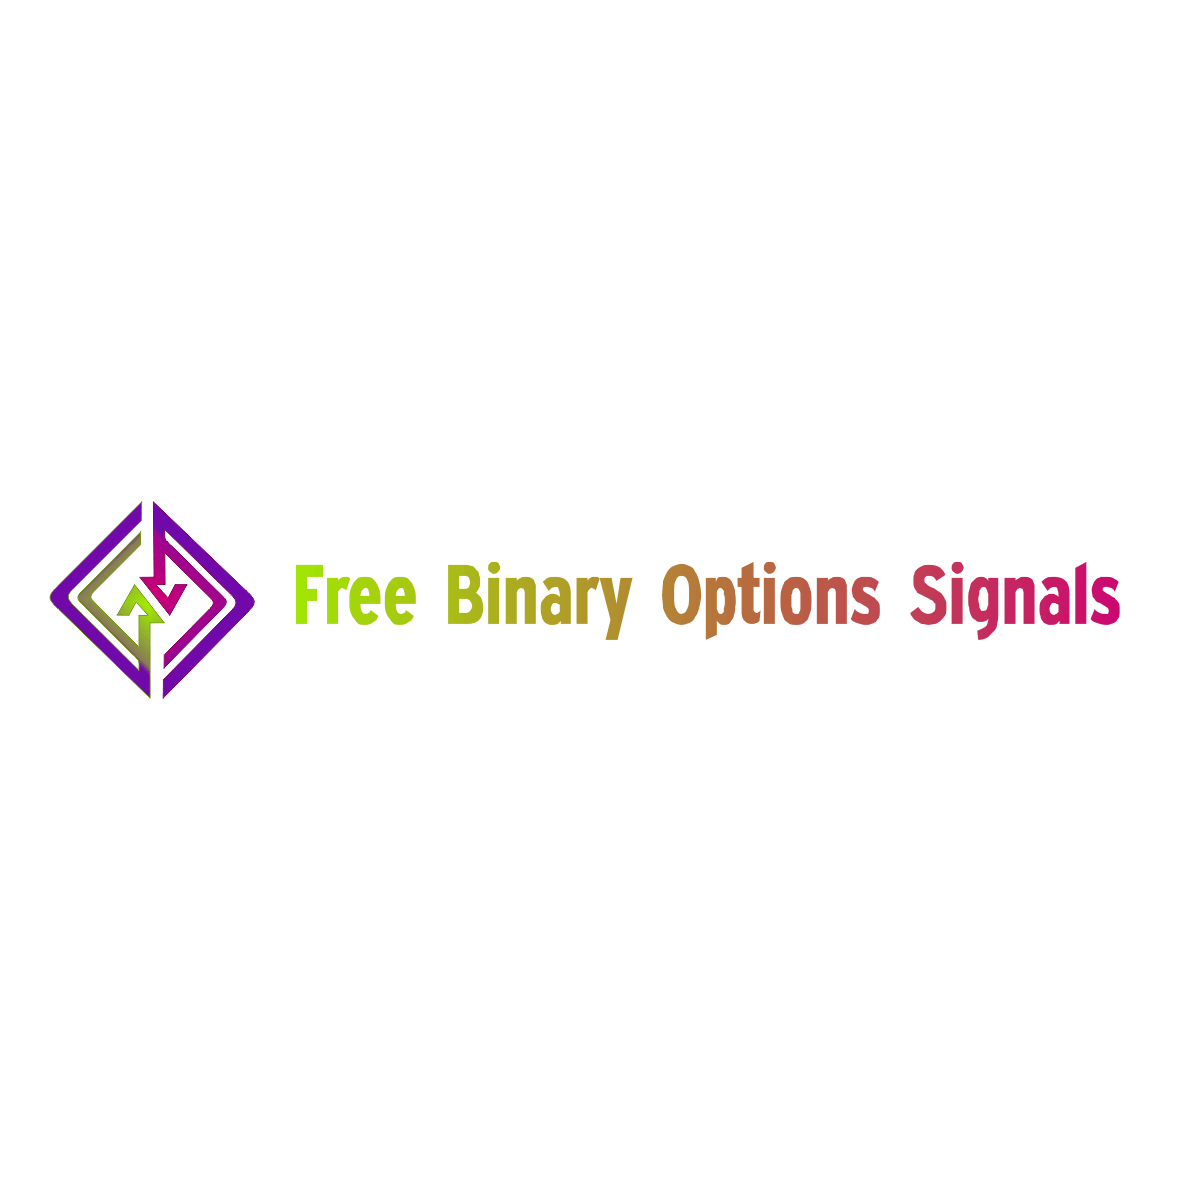 Binary options services